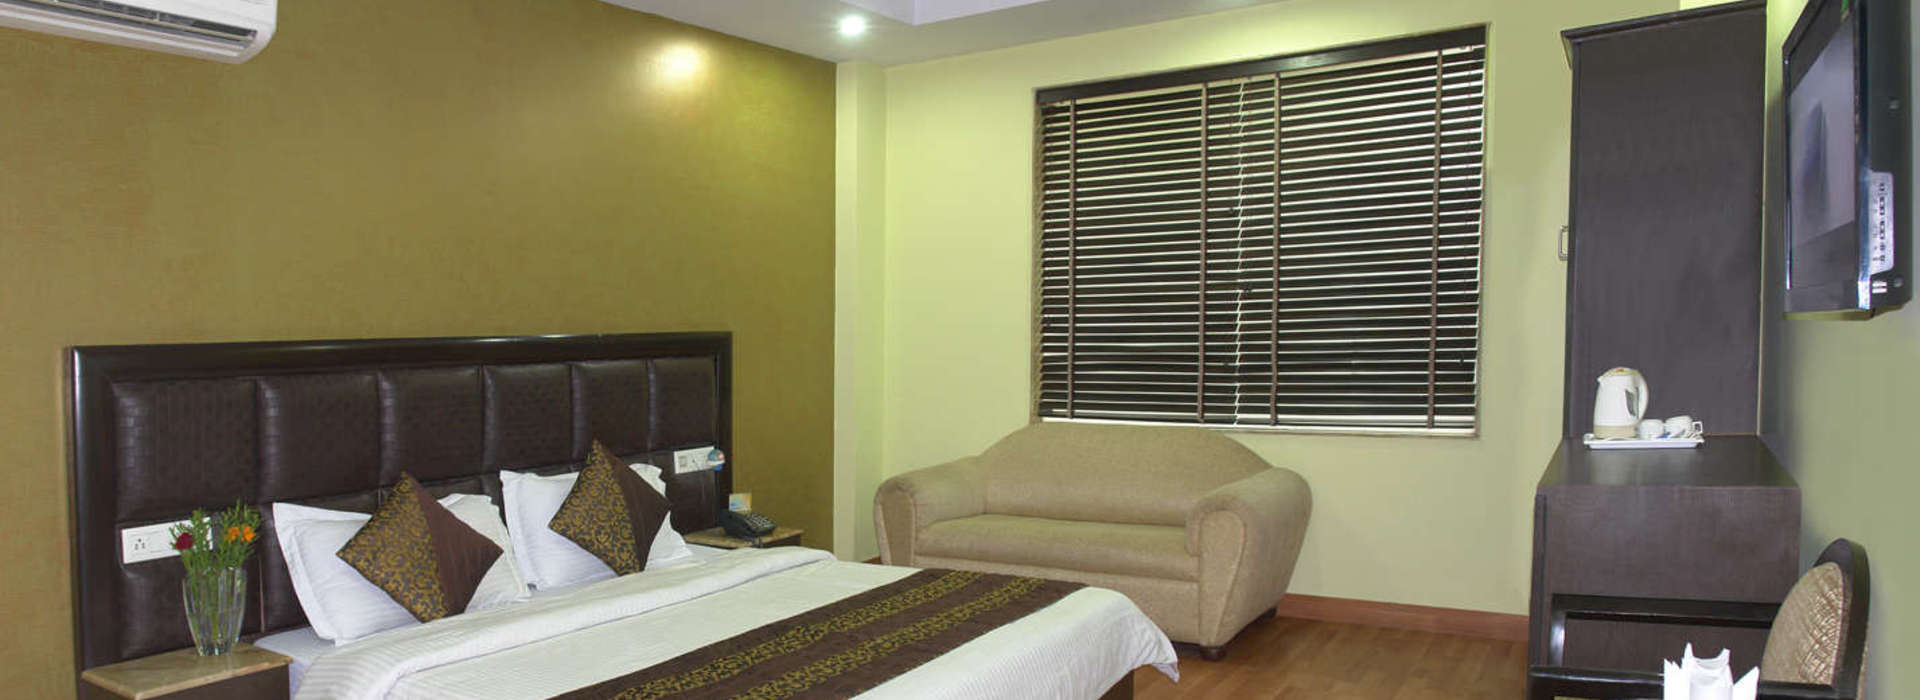 Comfortable Room With All Modern Facilities at Hotel Vedas Heritage